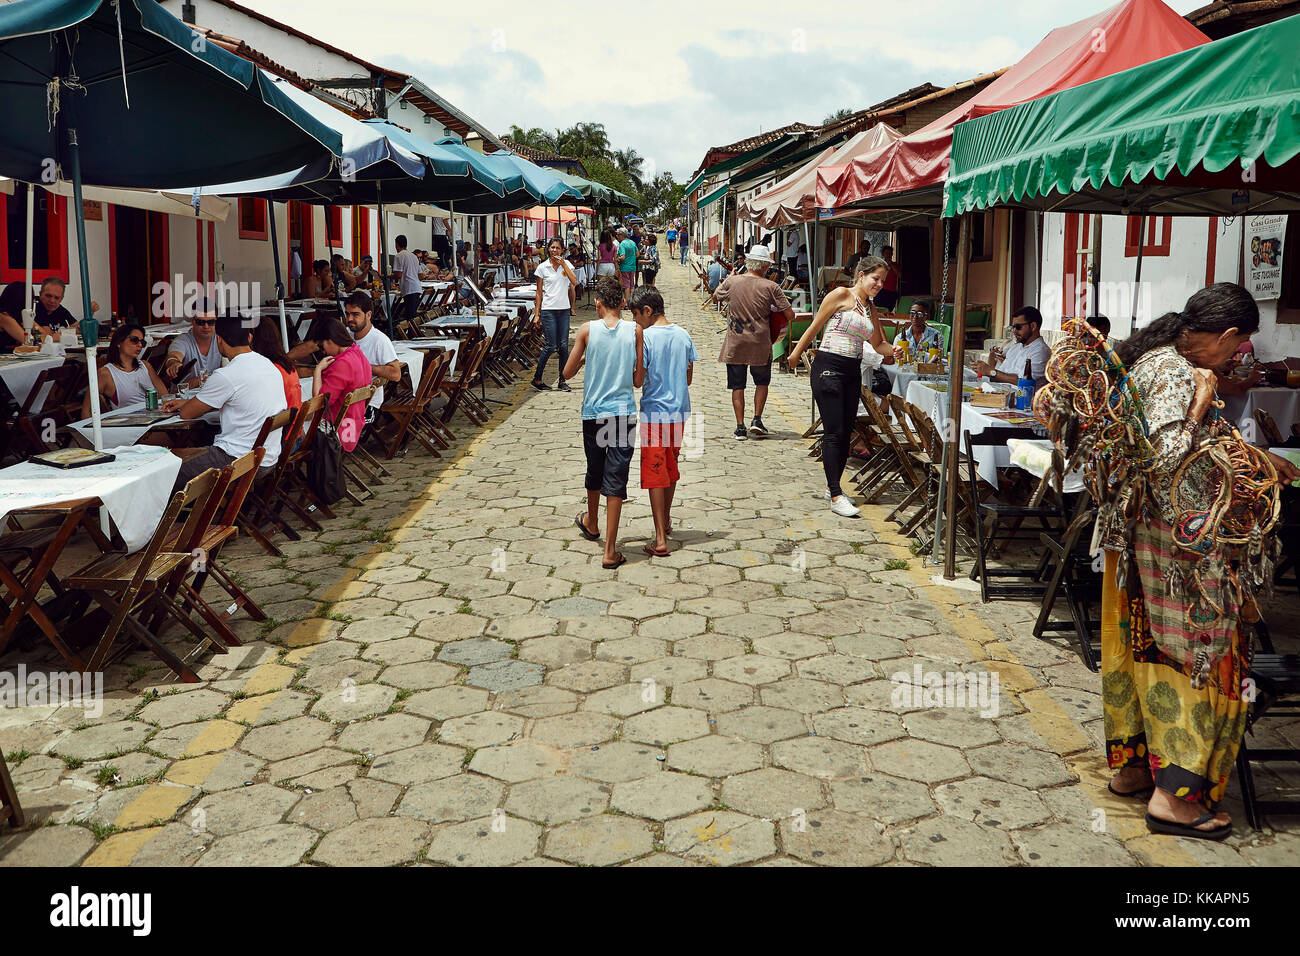 Street lined with outside restaurants in the old town of Pirenopolis, in the Brazilian state of Goias, Brazil, South - Stock Image